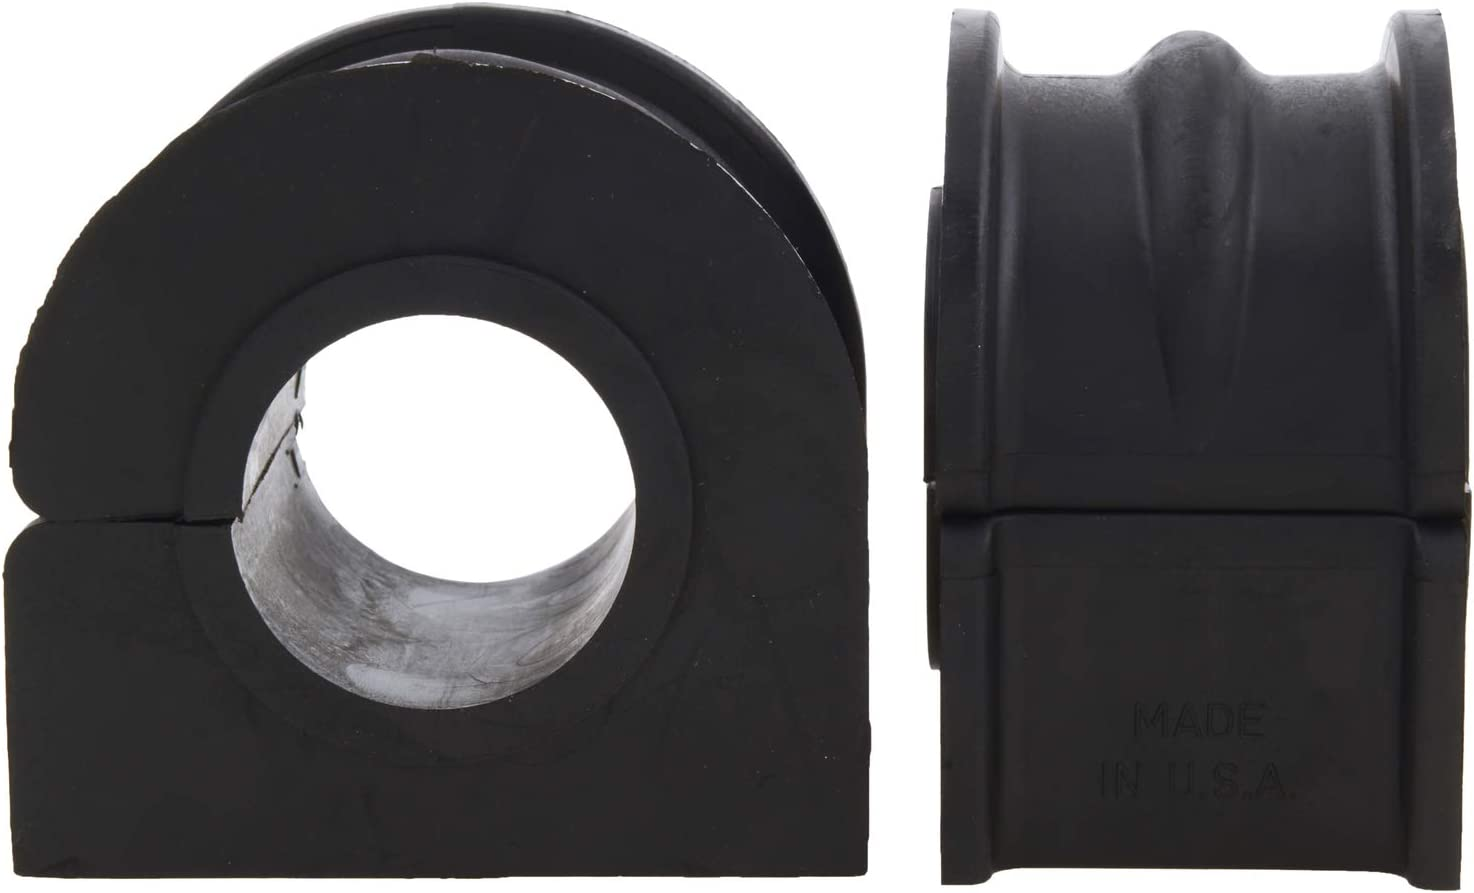 TRW JBU1107 Premium Suspension Stabilizer Bar Bushing